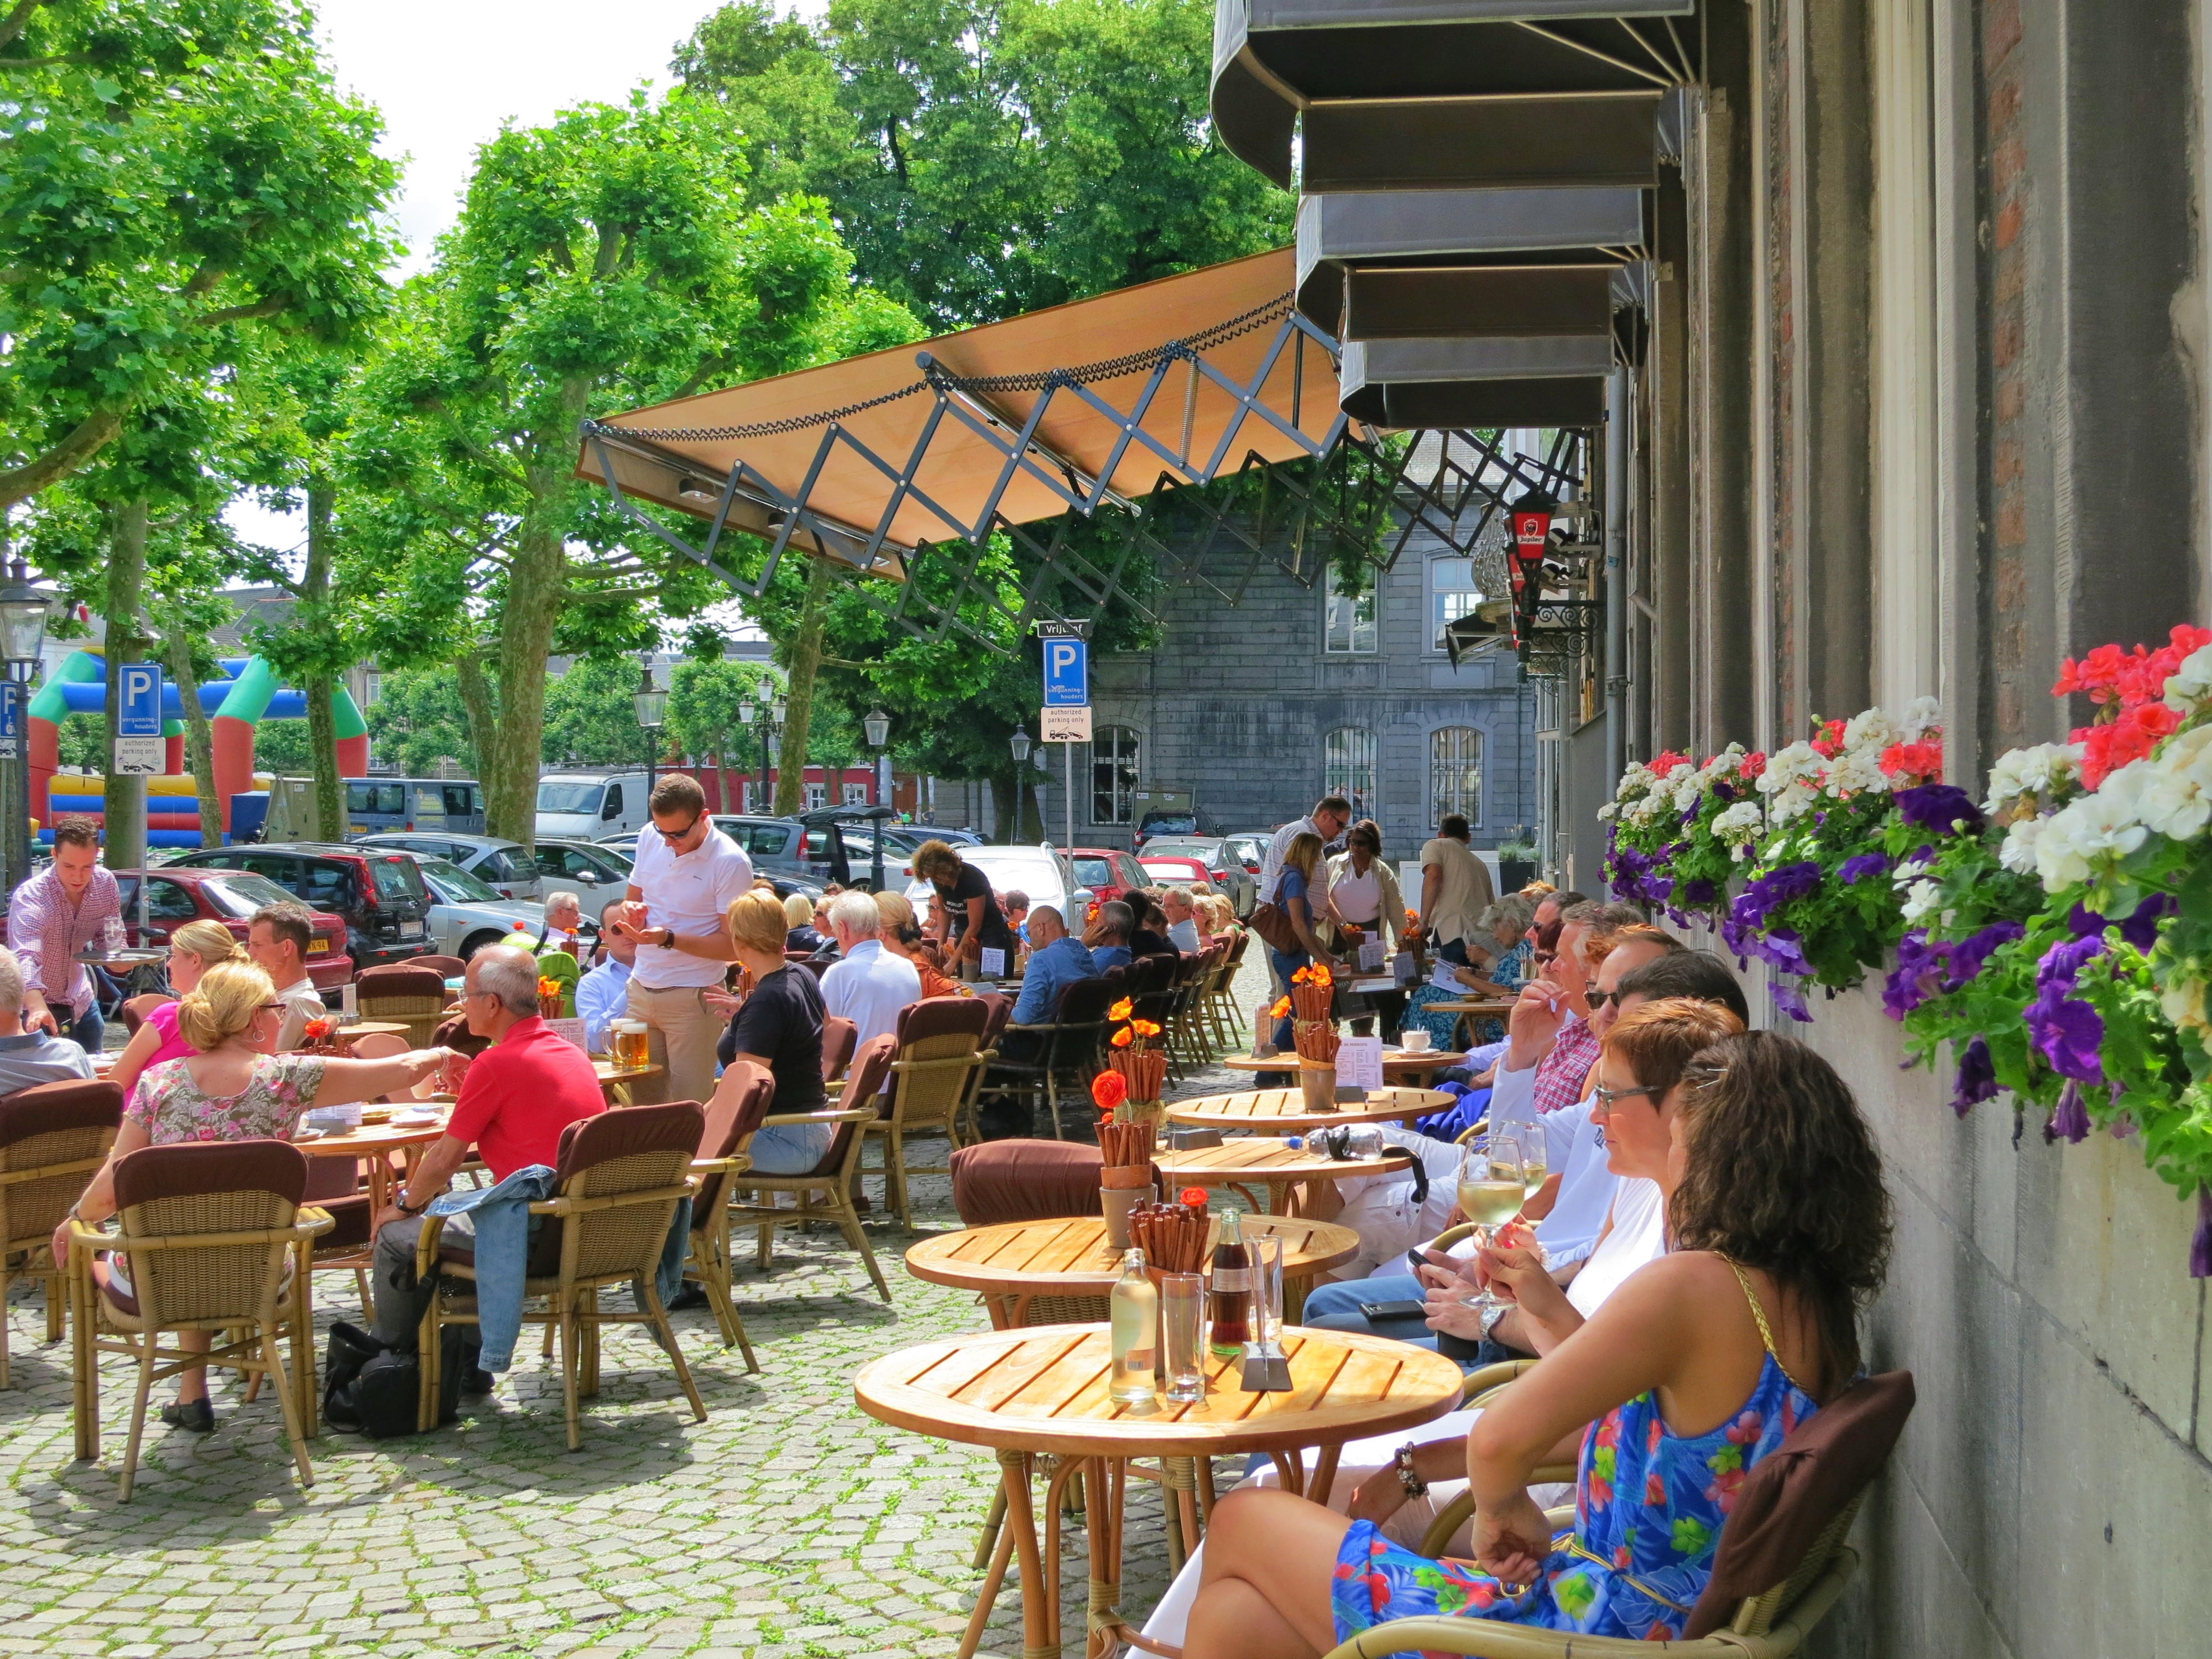 An outdoor cafe in Maastricht